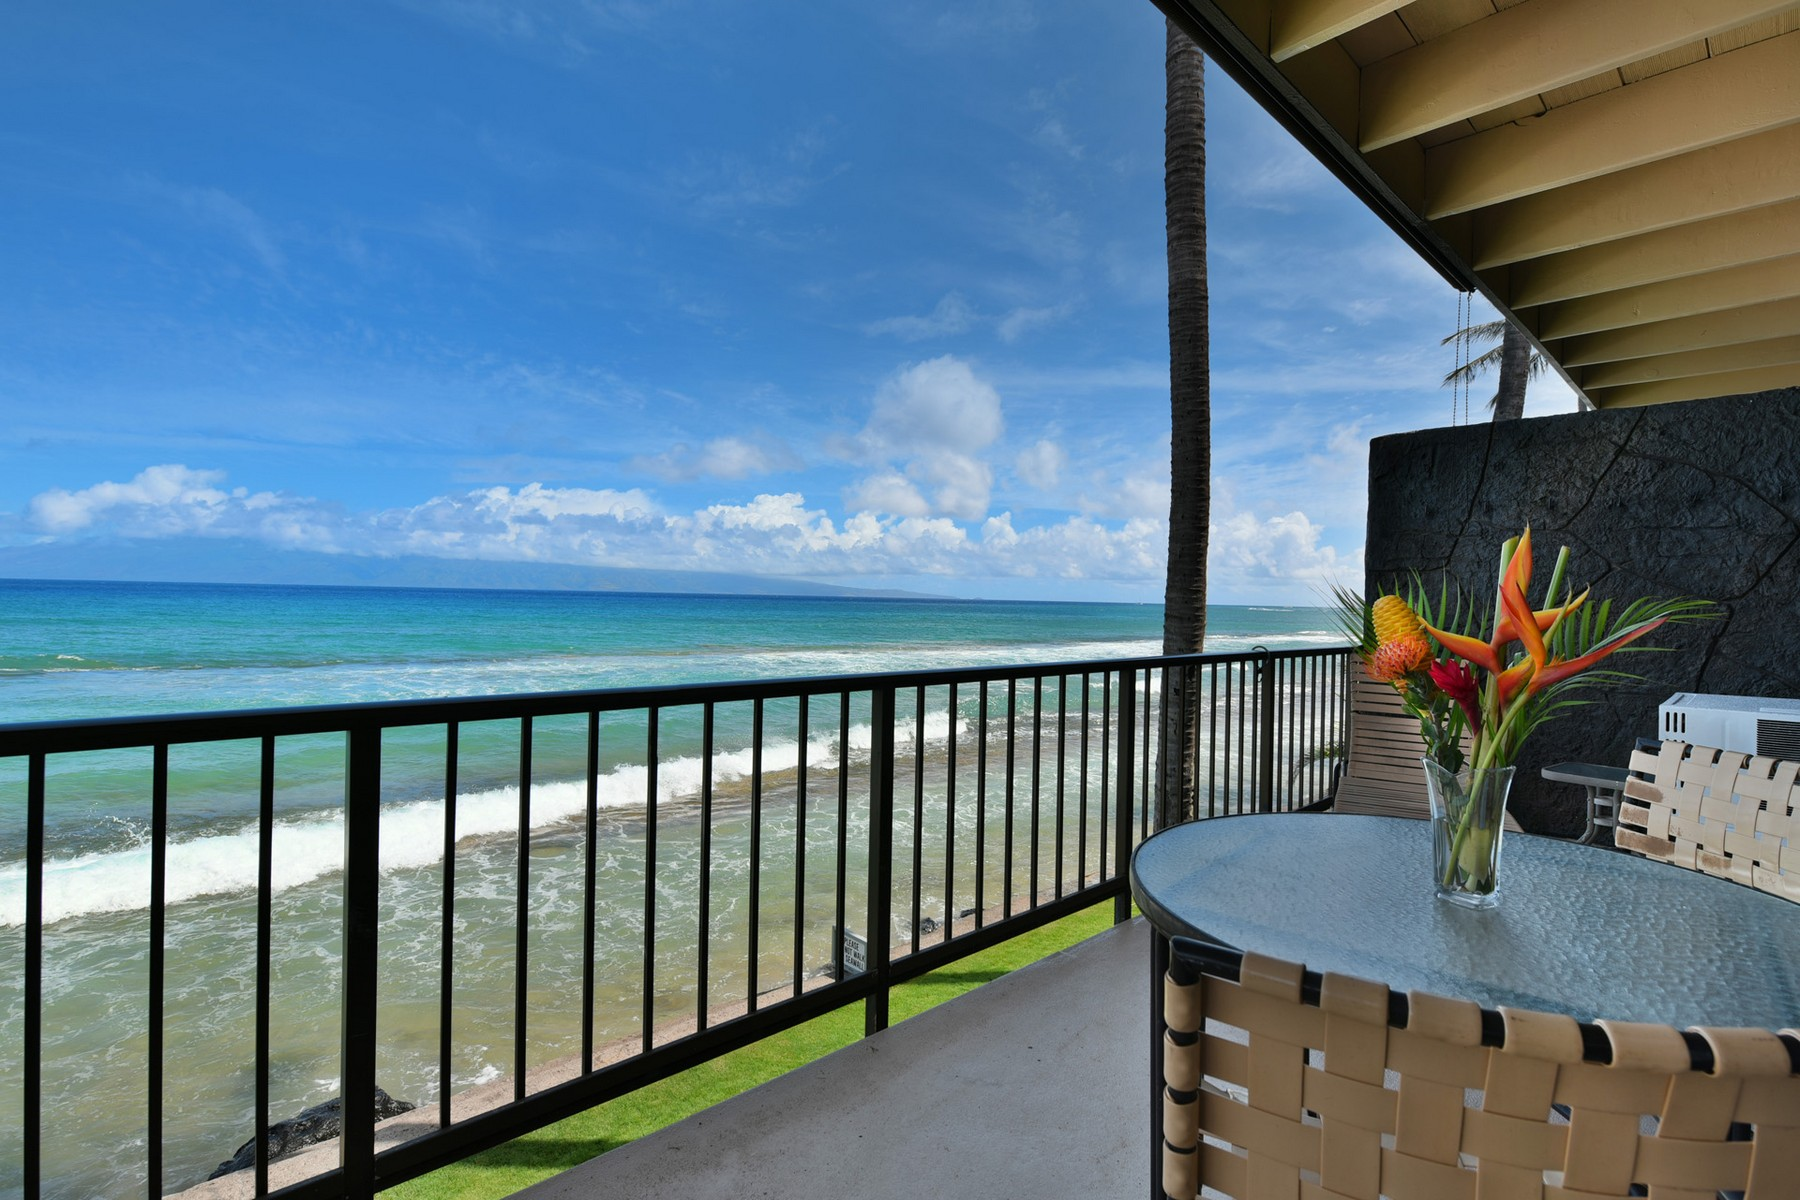 Кондоминиум для того Продажа на Stunning Ocean Front View 3559 Lower Honoapiilani Road, Maui Sands 4H Honokowai, Гавайи, 96761 Соединенные Штаты